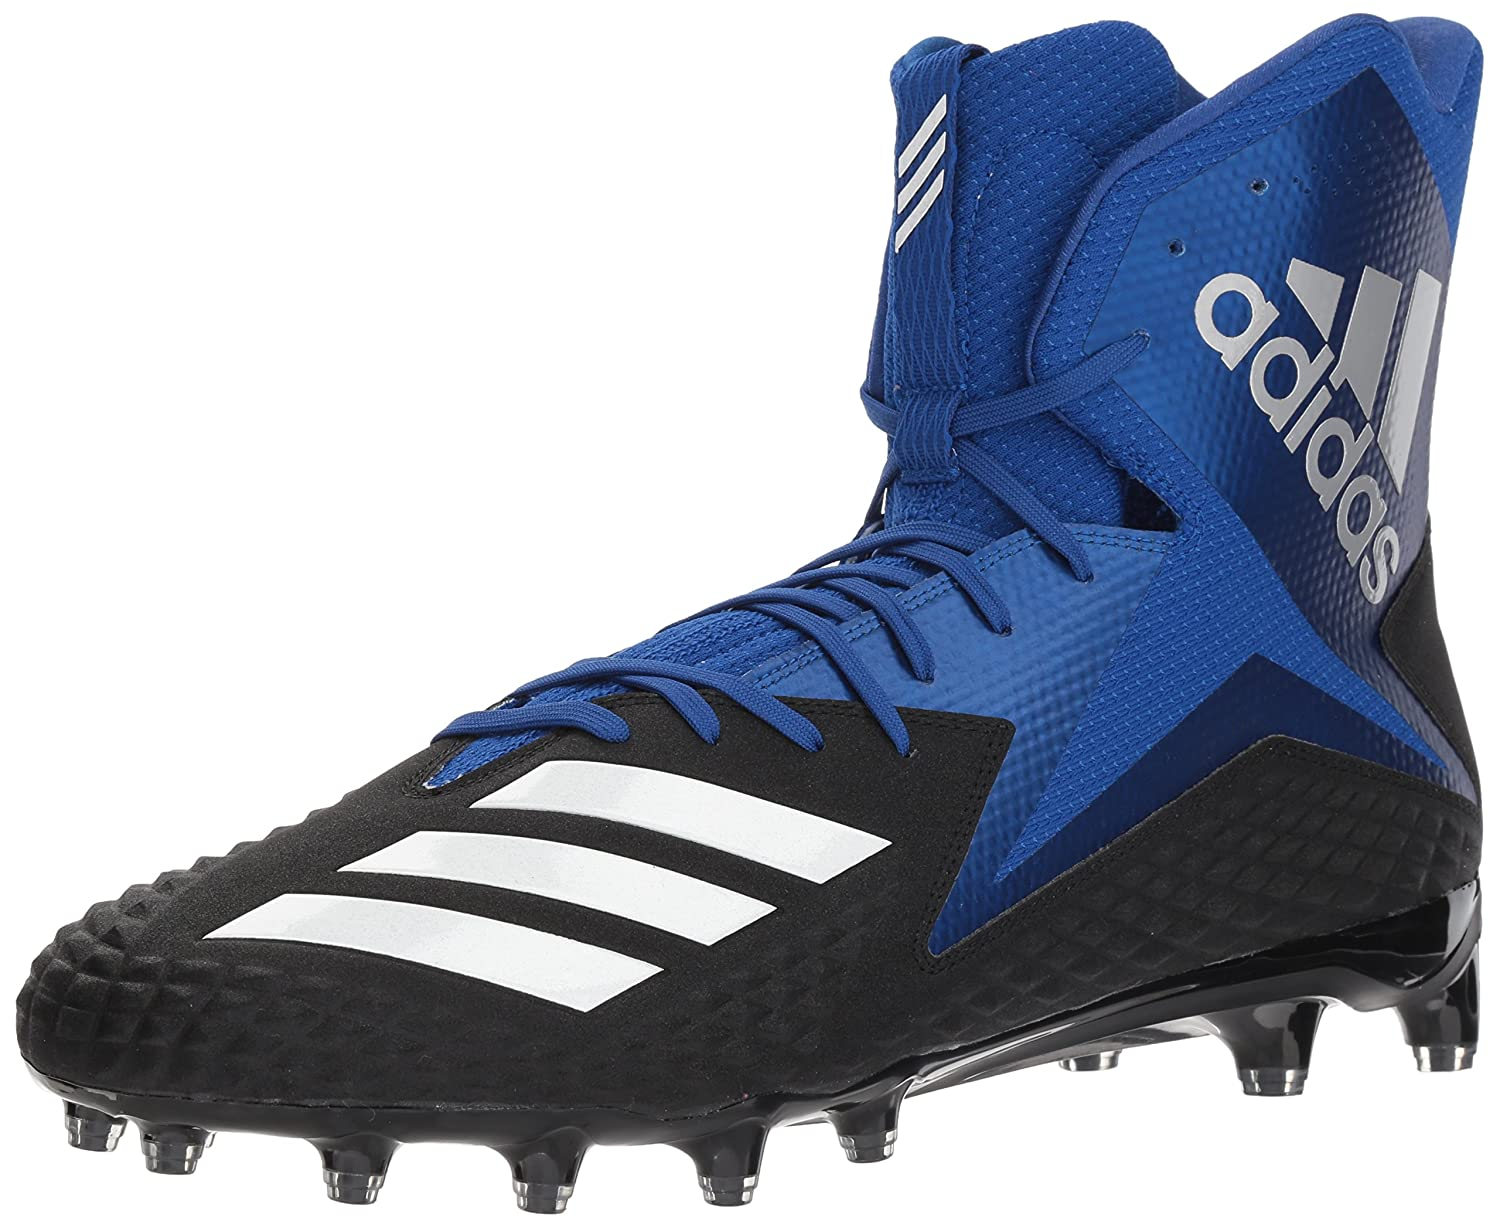 Adidas Herren Herren Herren High Freak X Carbon Mid Football-Schuhe 5b831d